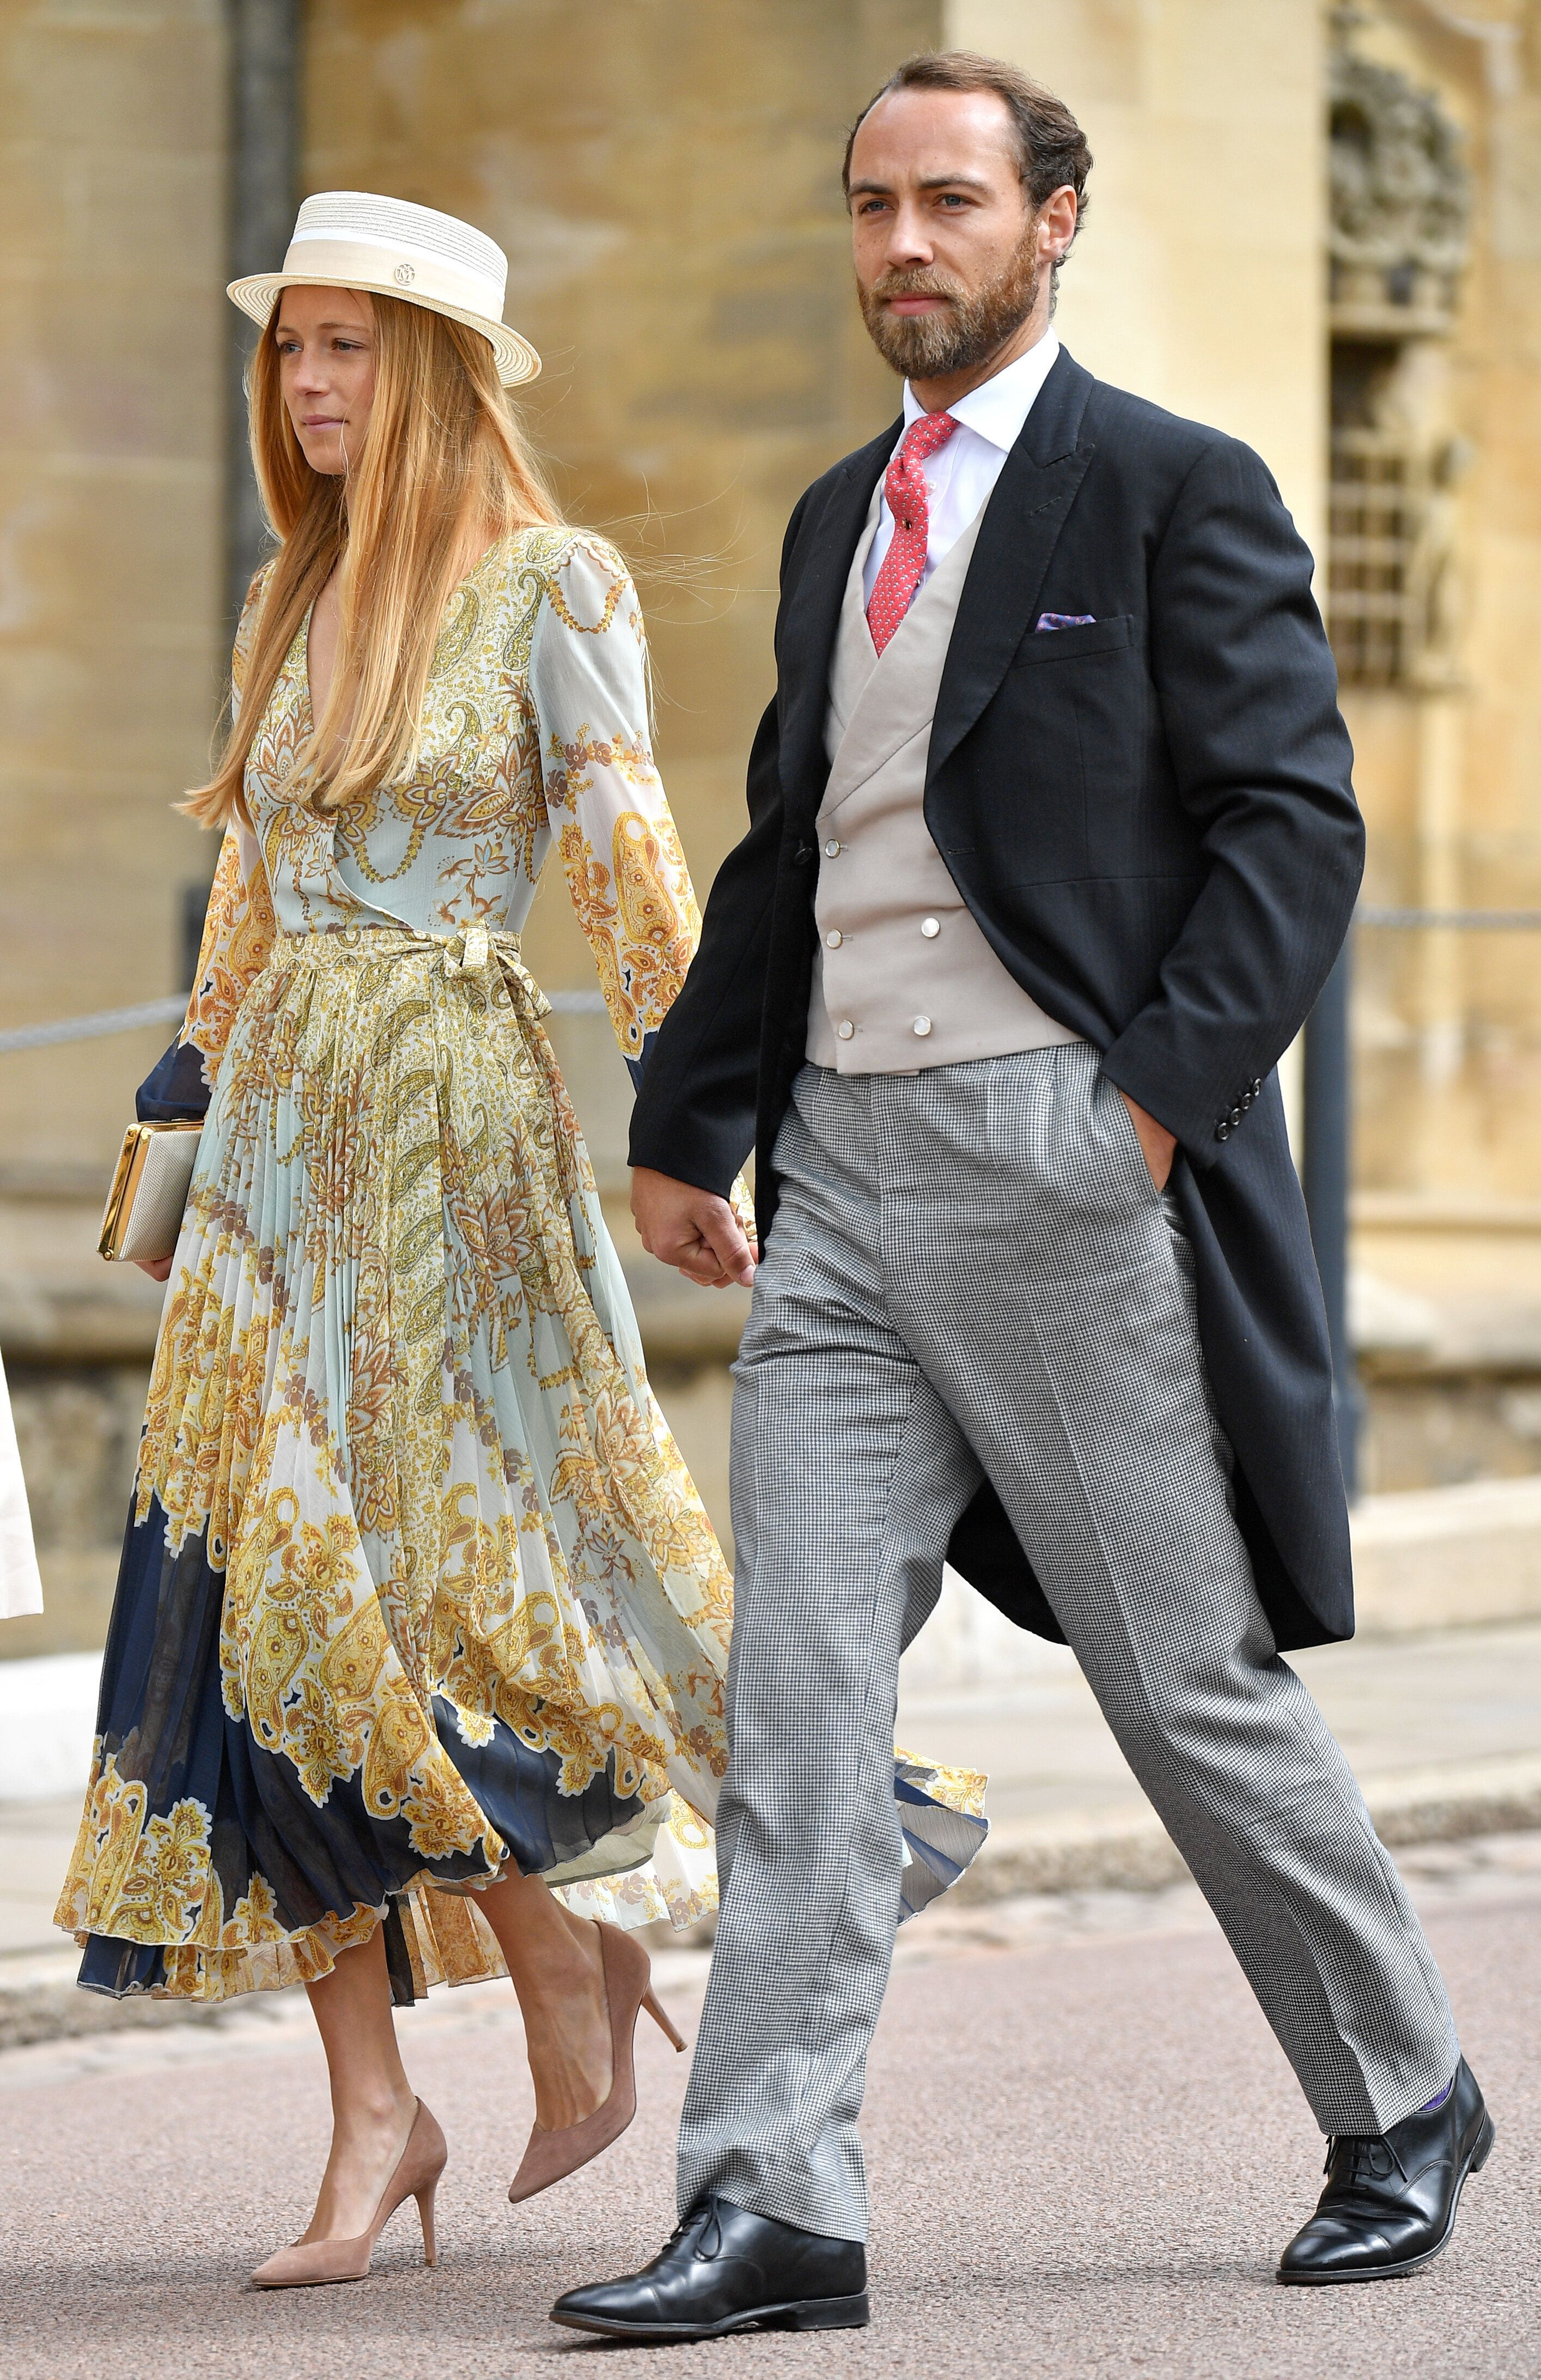 Al royal wedding di Gabriella Windsor con l'abito H&M da 57 euro. La scelta low cost della fidanzata di James